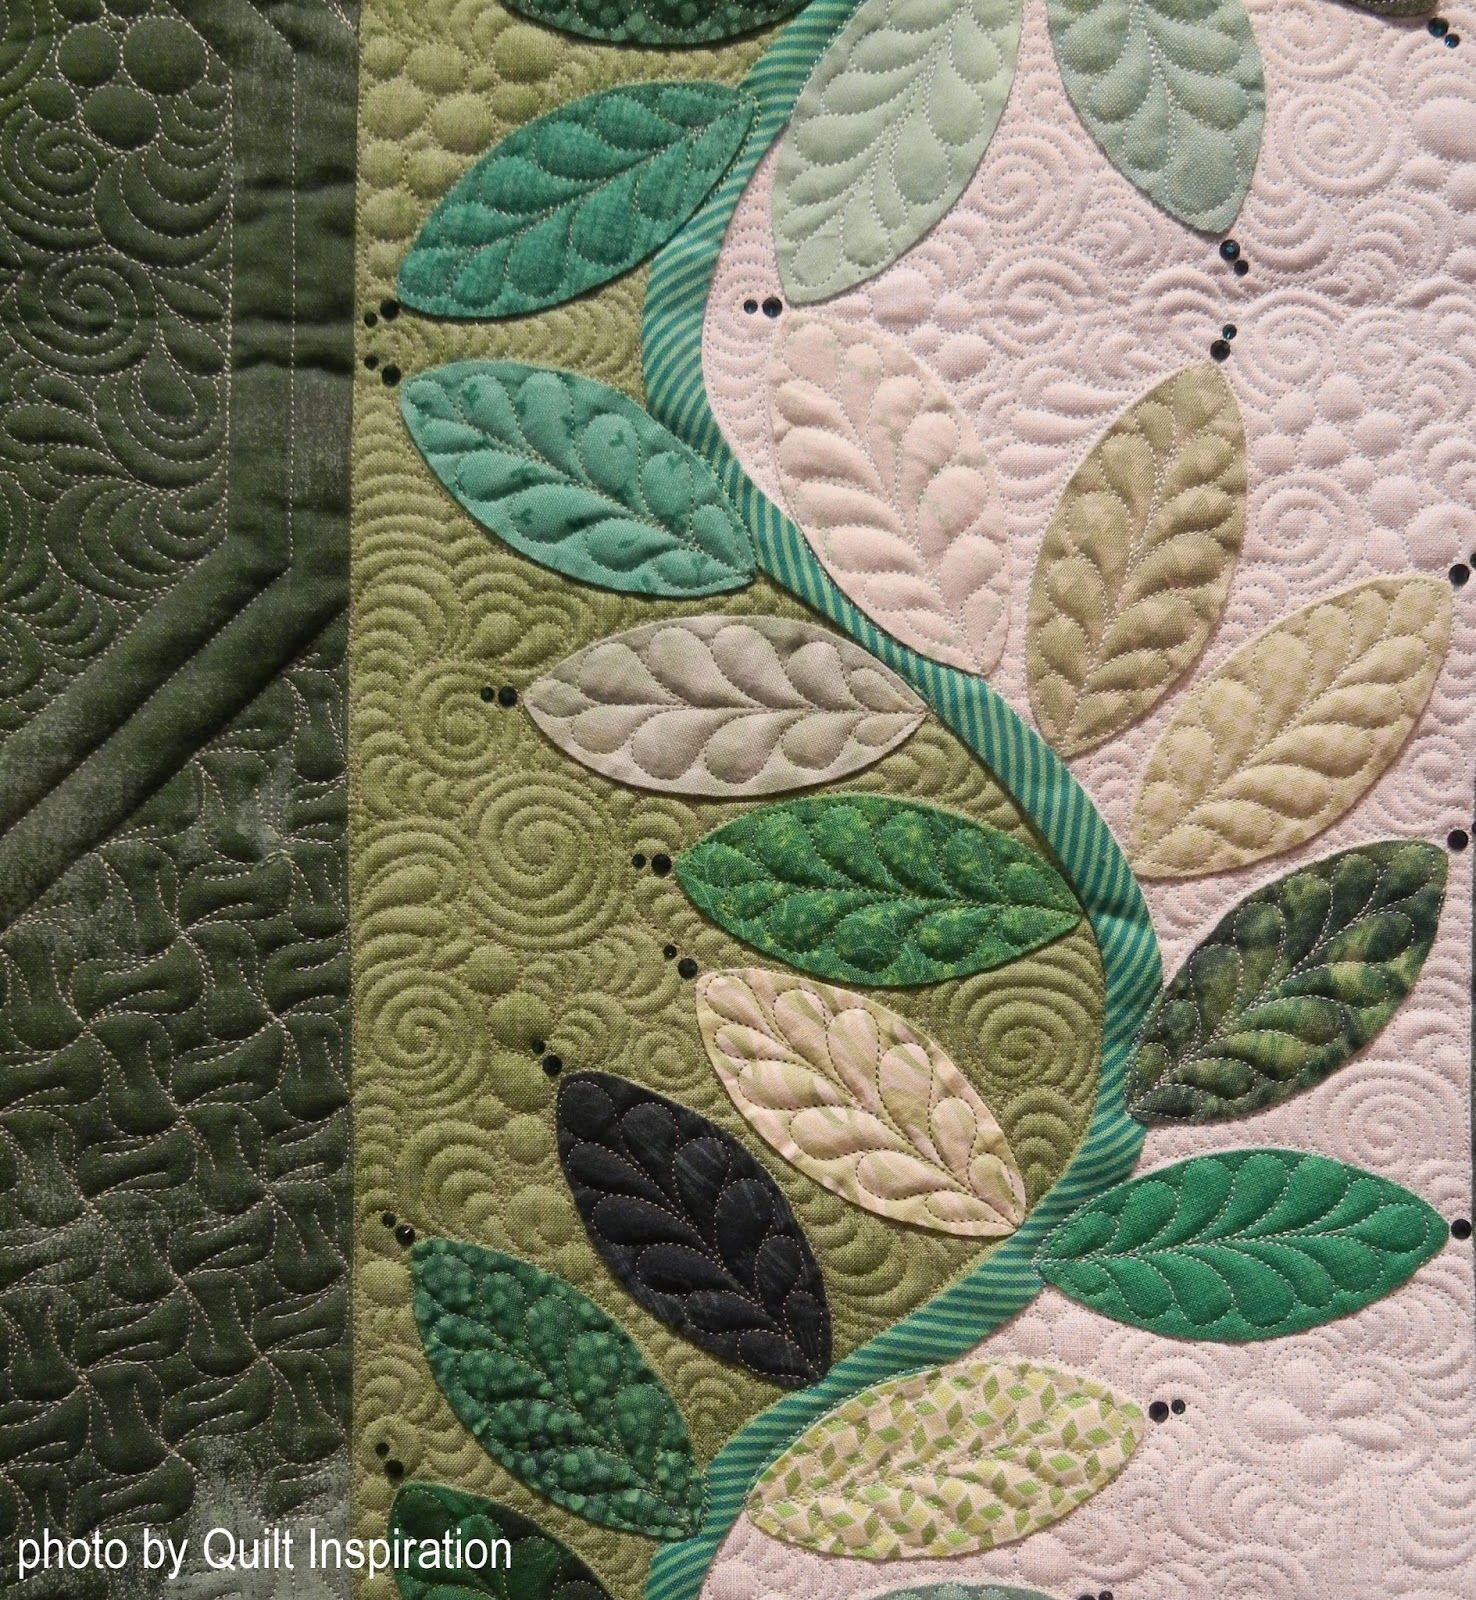 detail emeralds and lace by karin crawford utah photo by quilt